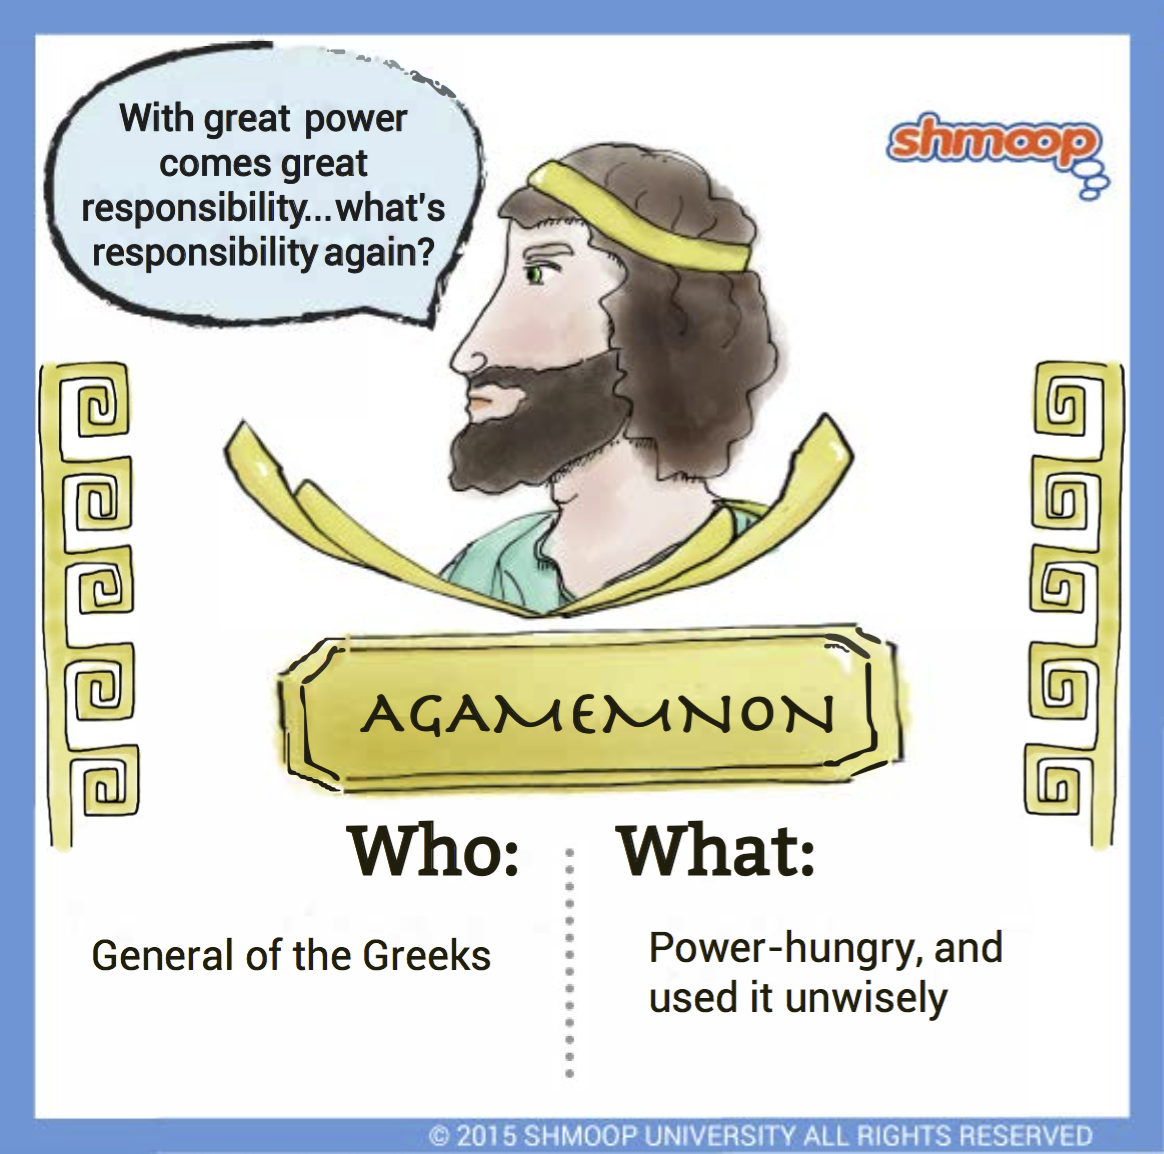 gods grandeur analysis essay Free god's grandeur papers, essays, and research papers.